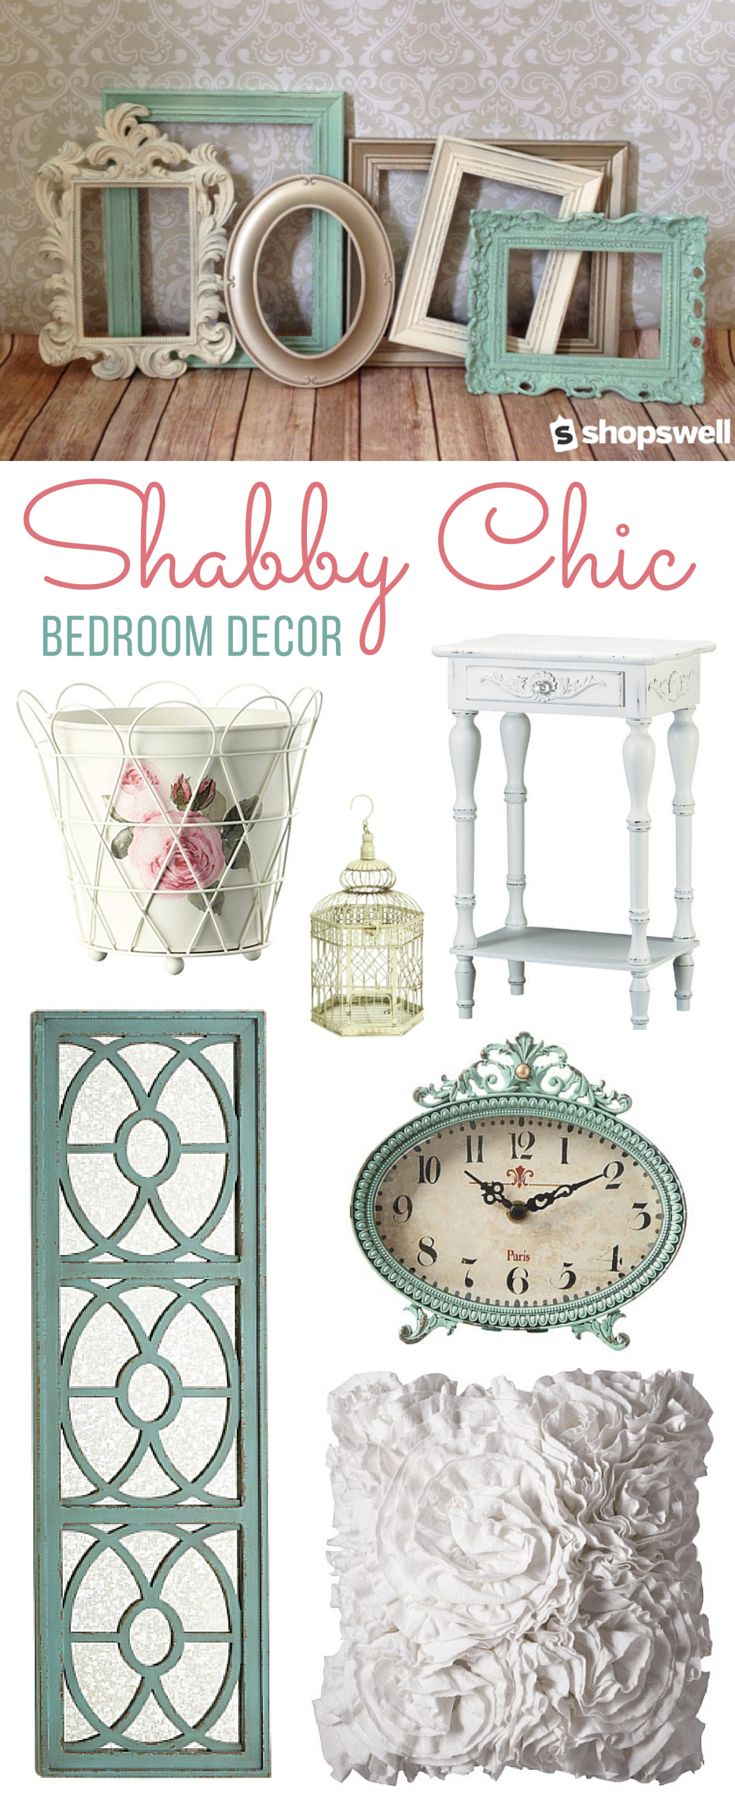 Diy shabby chic home decor - 20 Home Decor Essentials For The Shabby Chic Bedroom